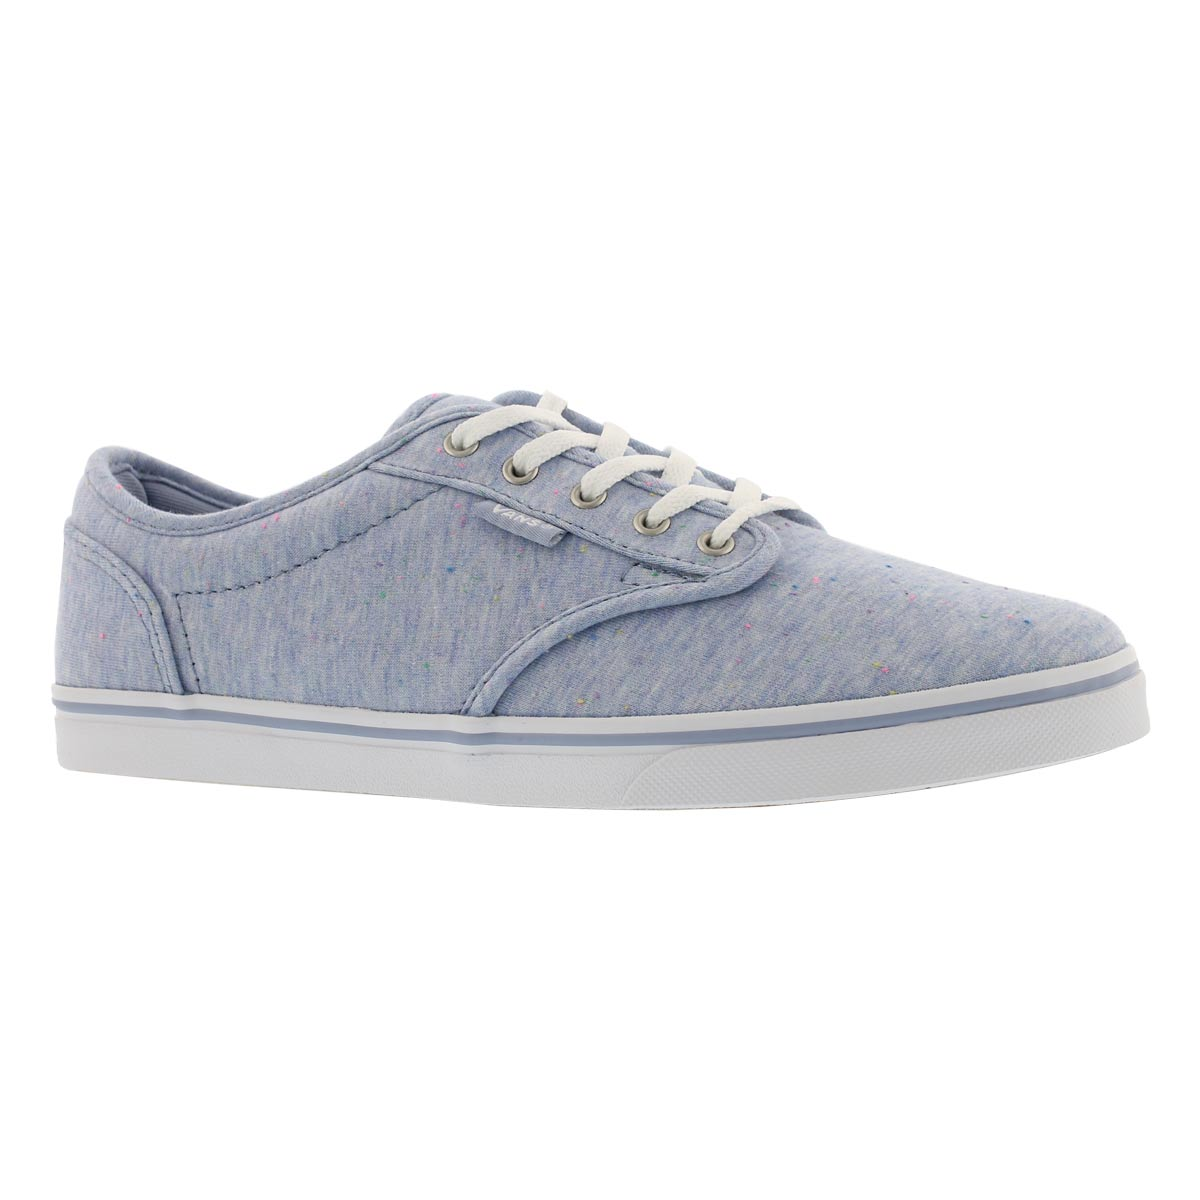 Women's ATWOOD LOW speckle blue laceup sneakers